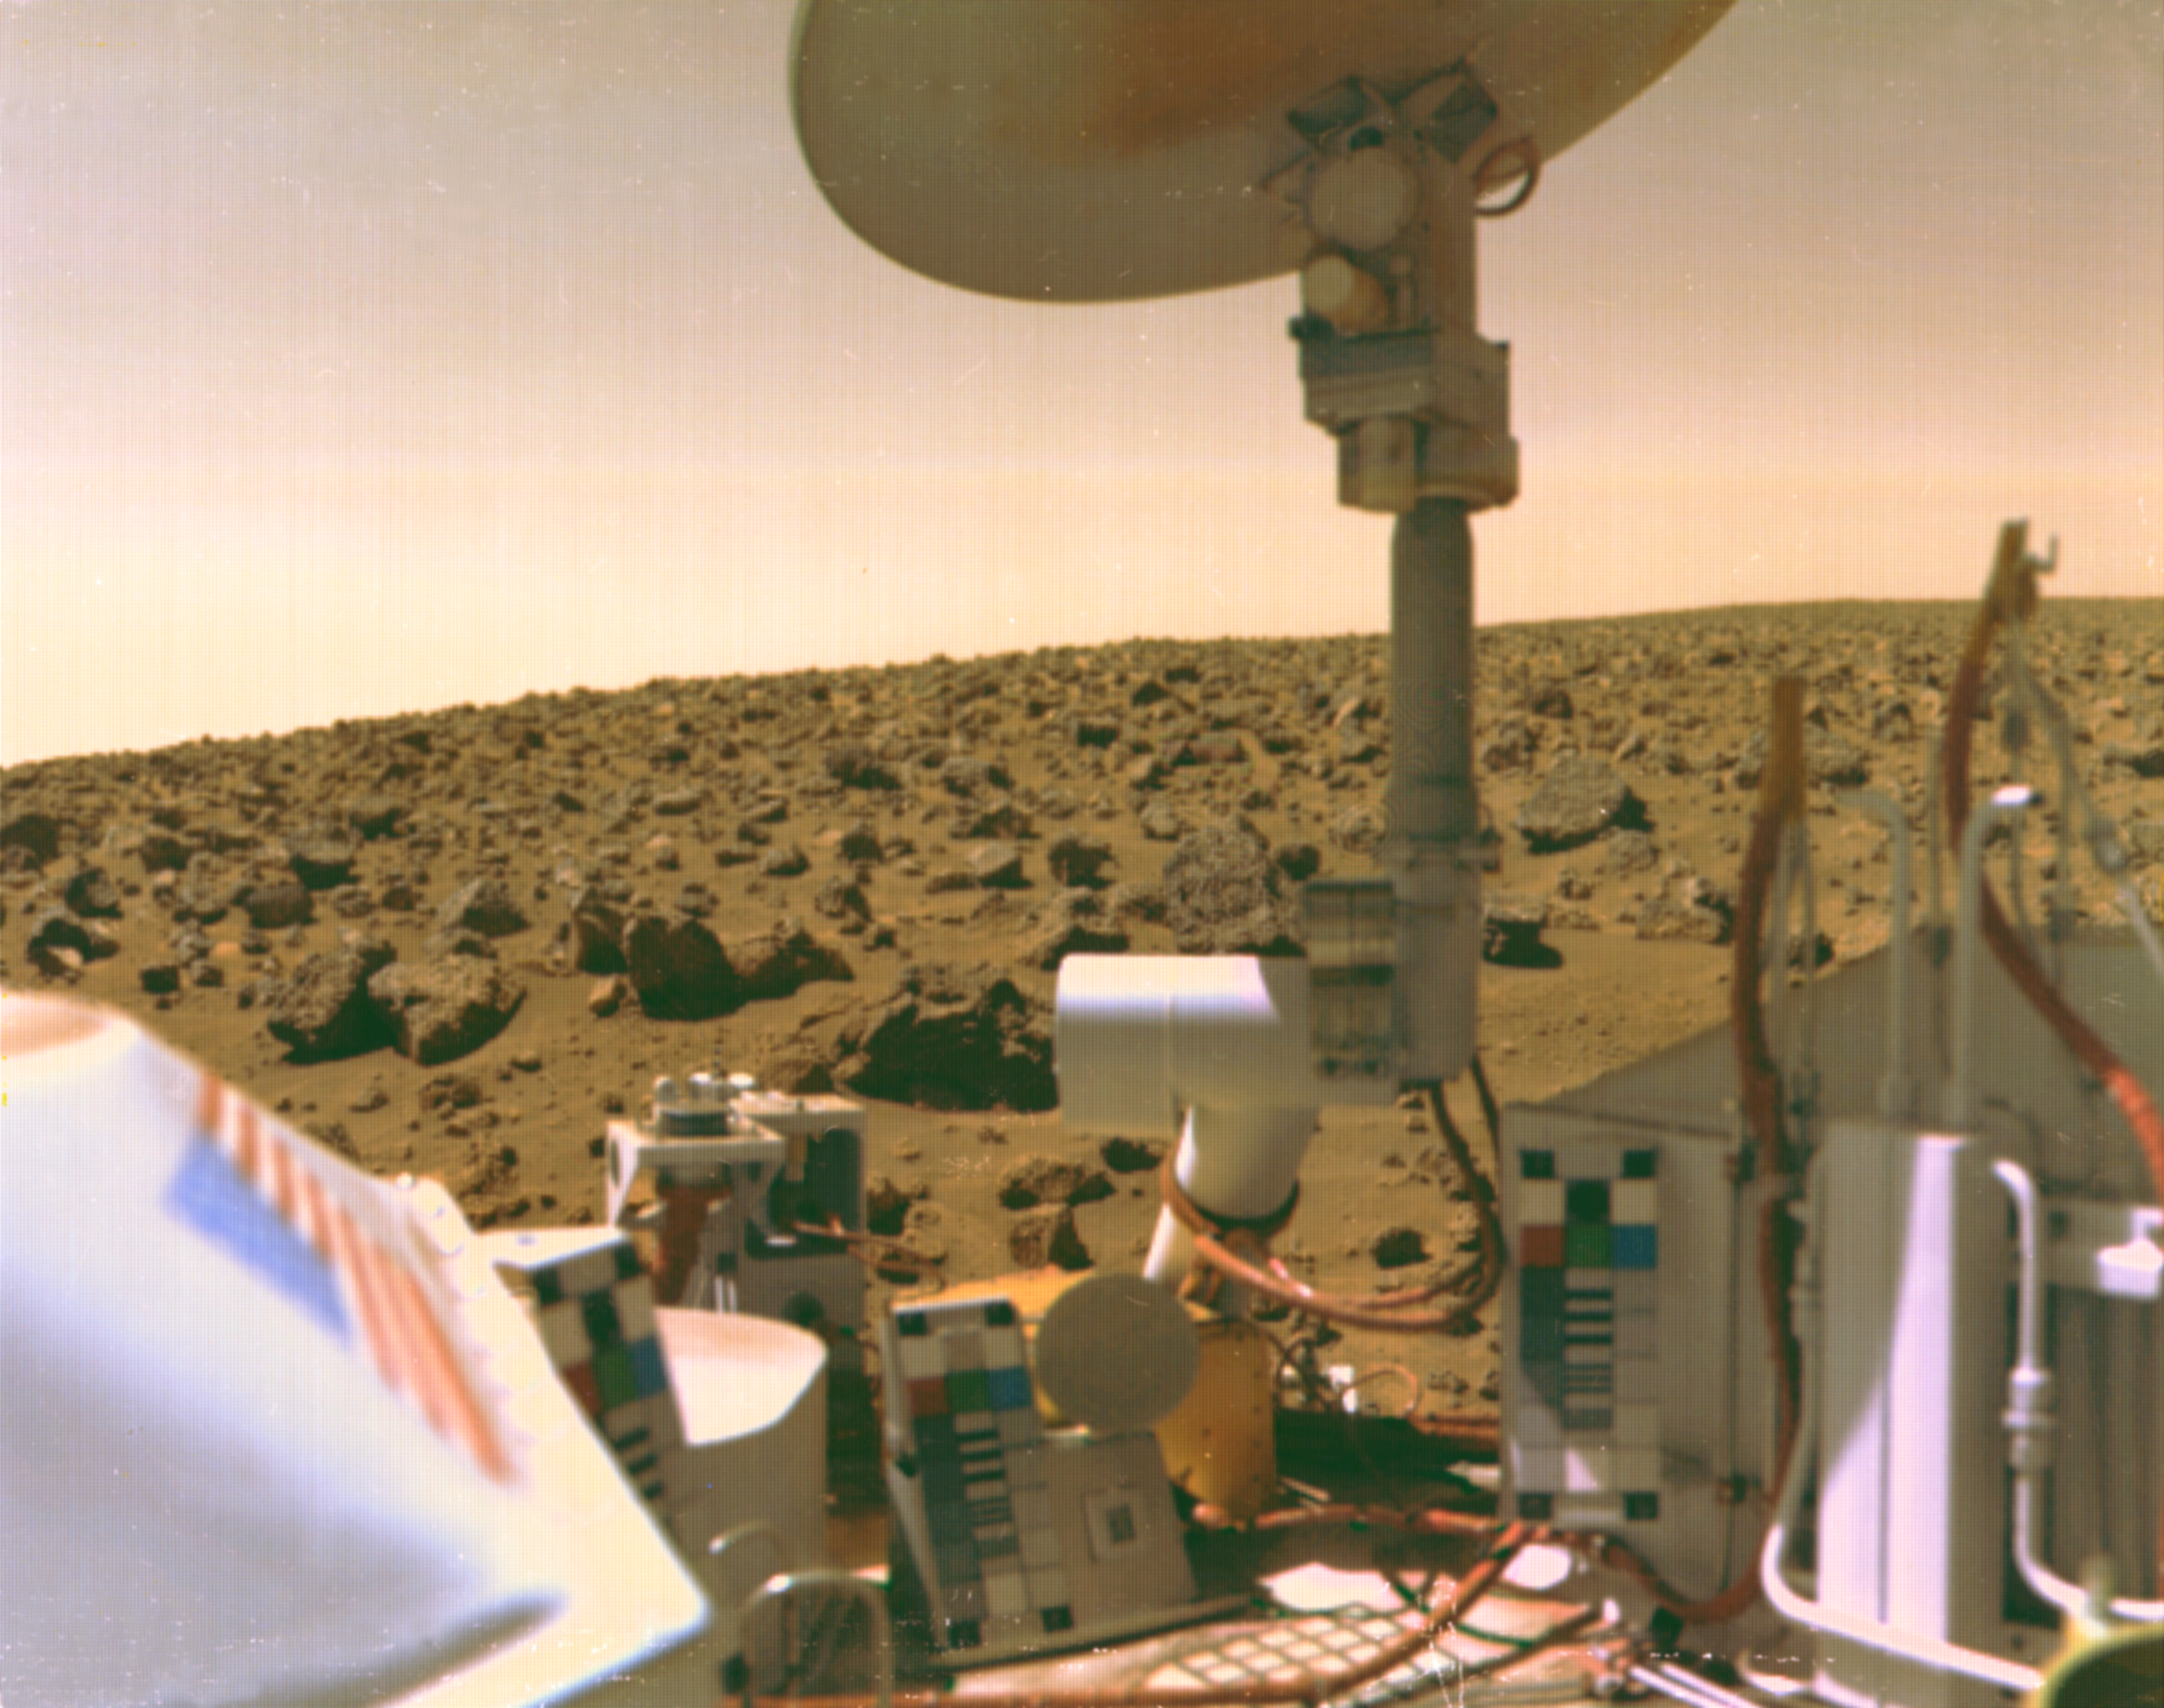 U.S. flag visible on Viking lander with Martian terrain on horizon